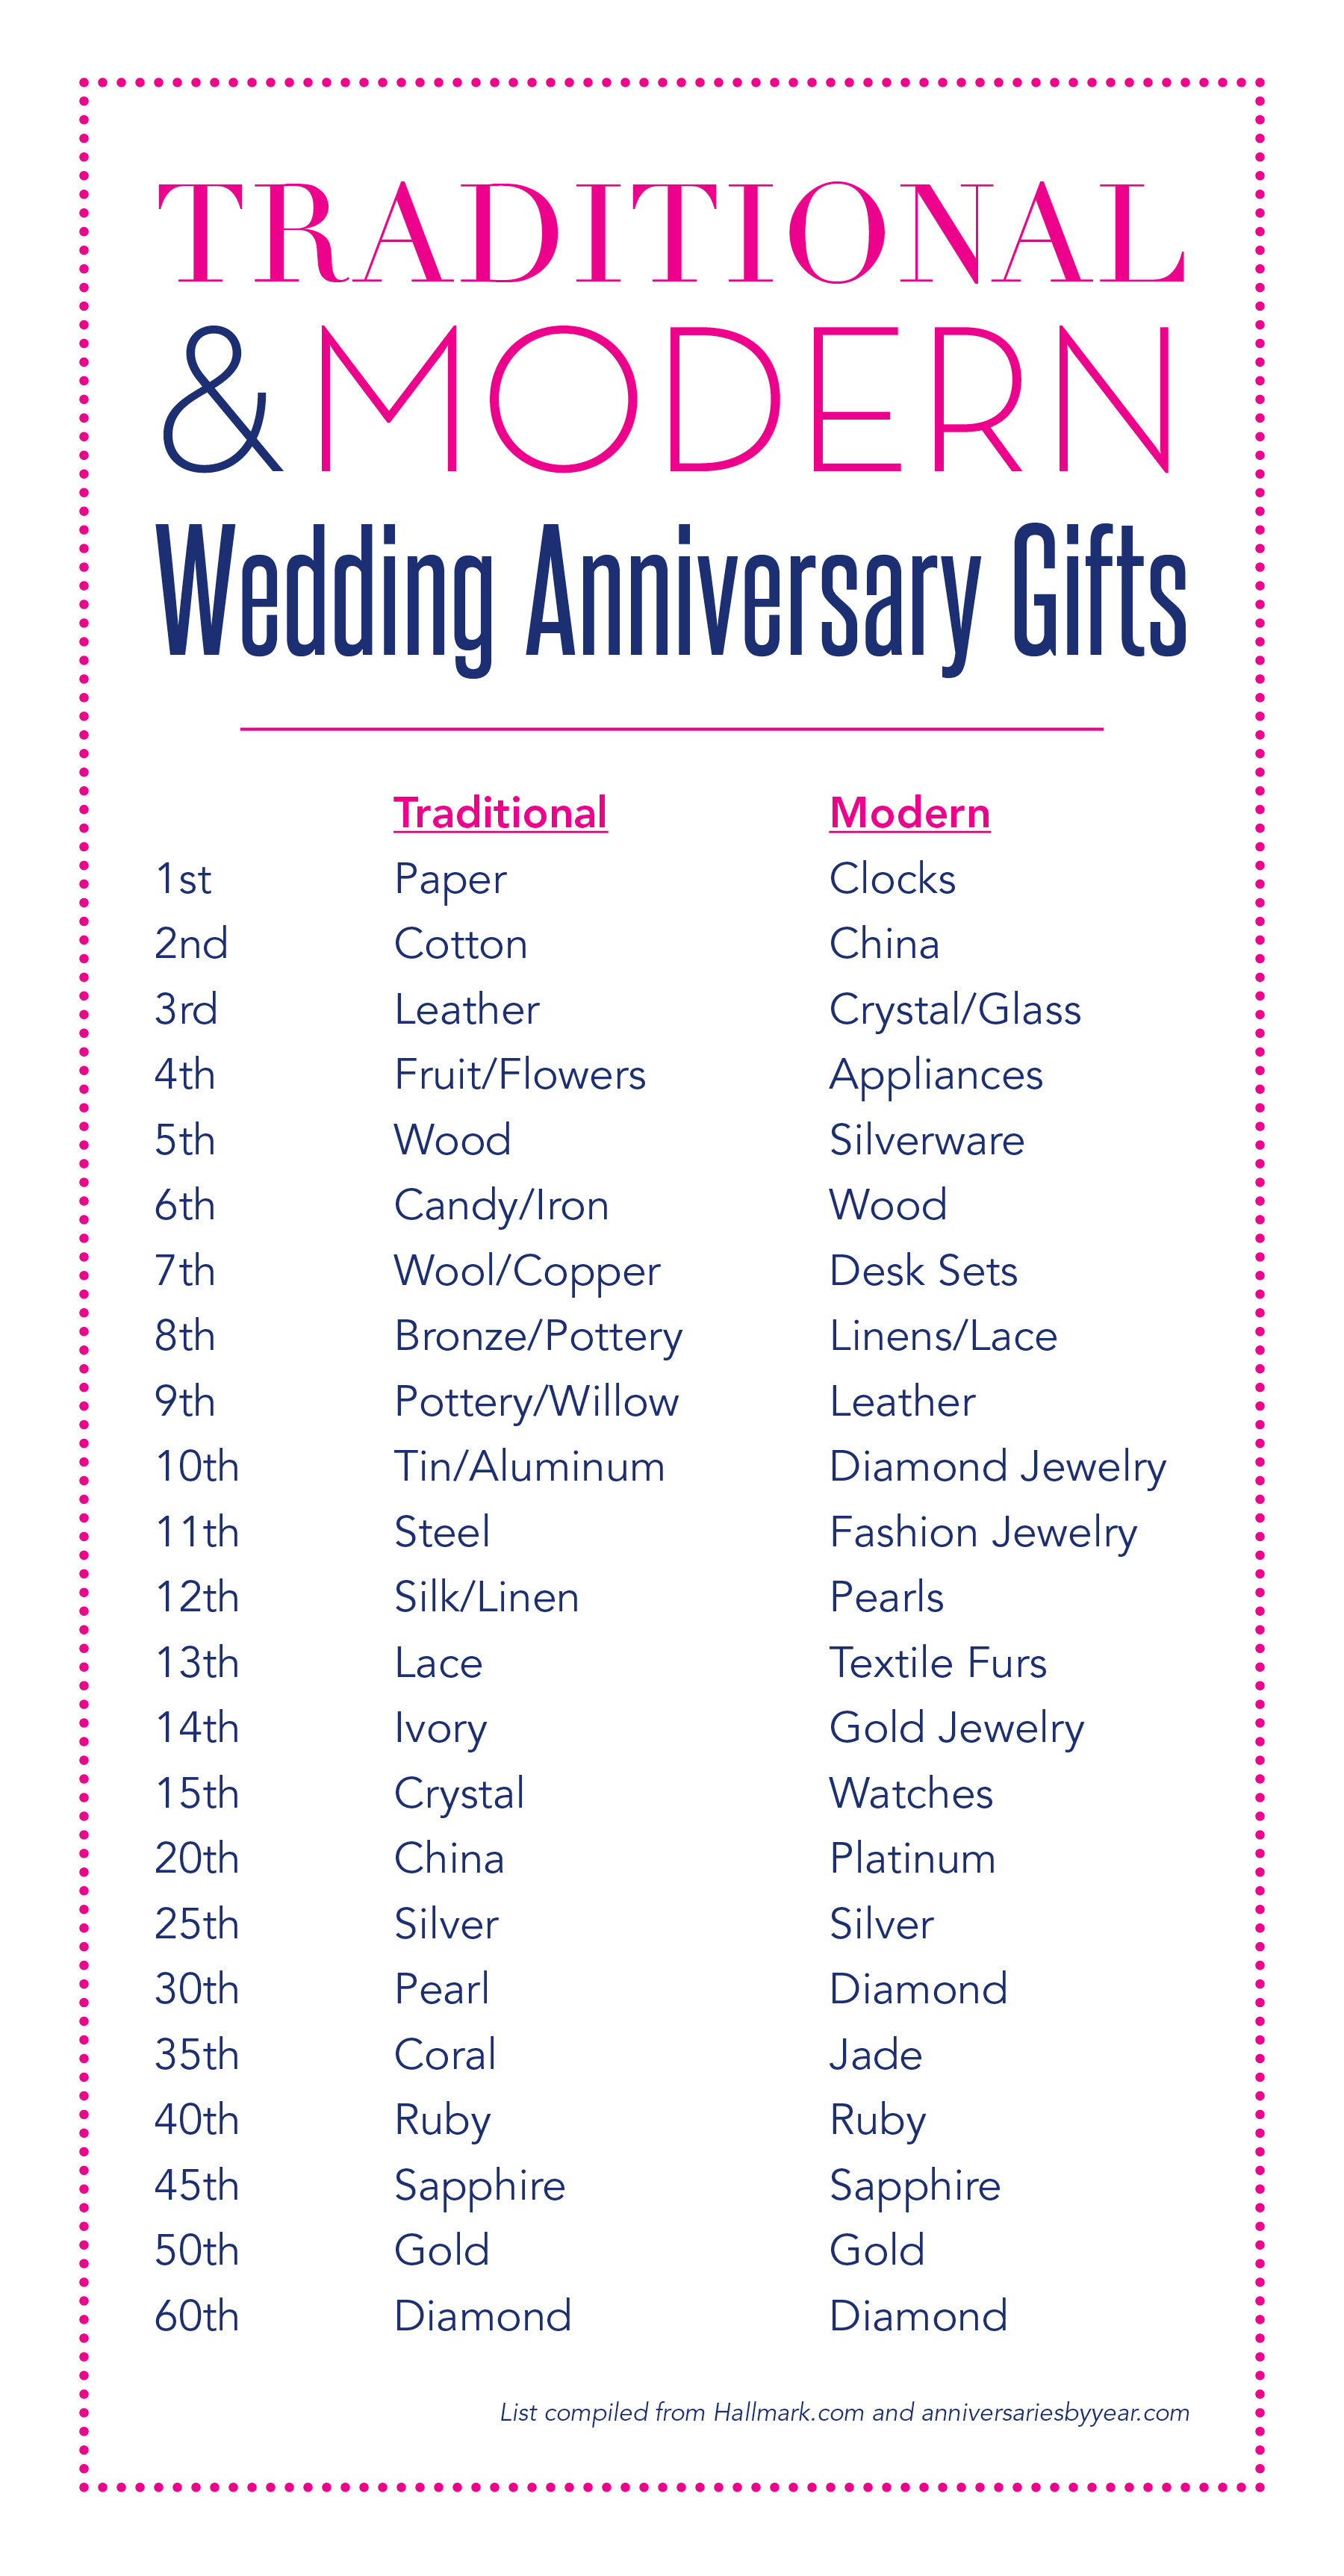 Wedding Anniversary Gift Ideas 10 Years : wedding anniversary gifts (traditional & modern)